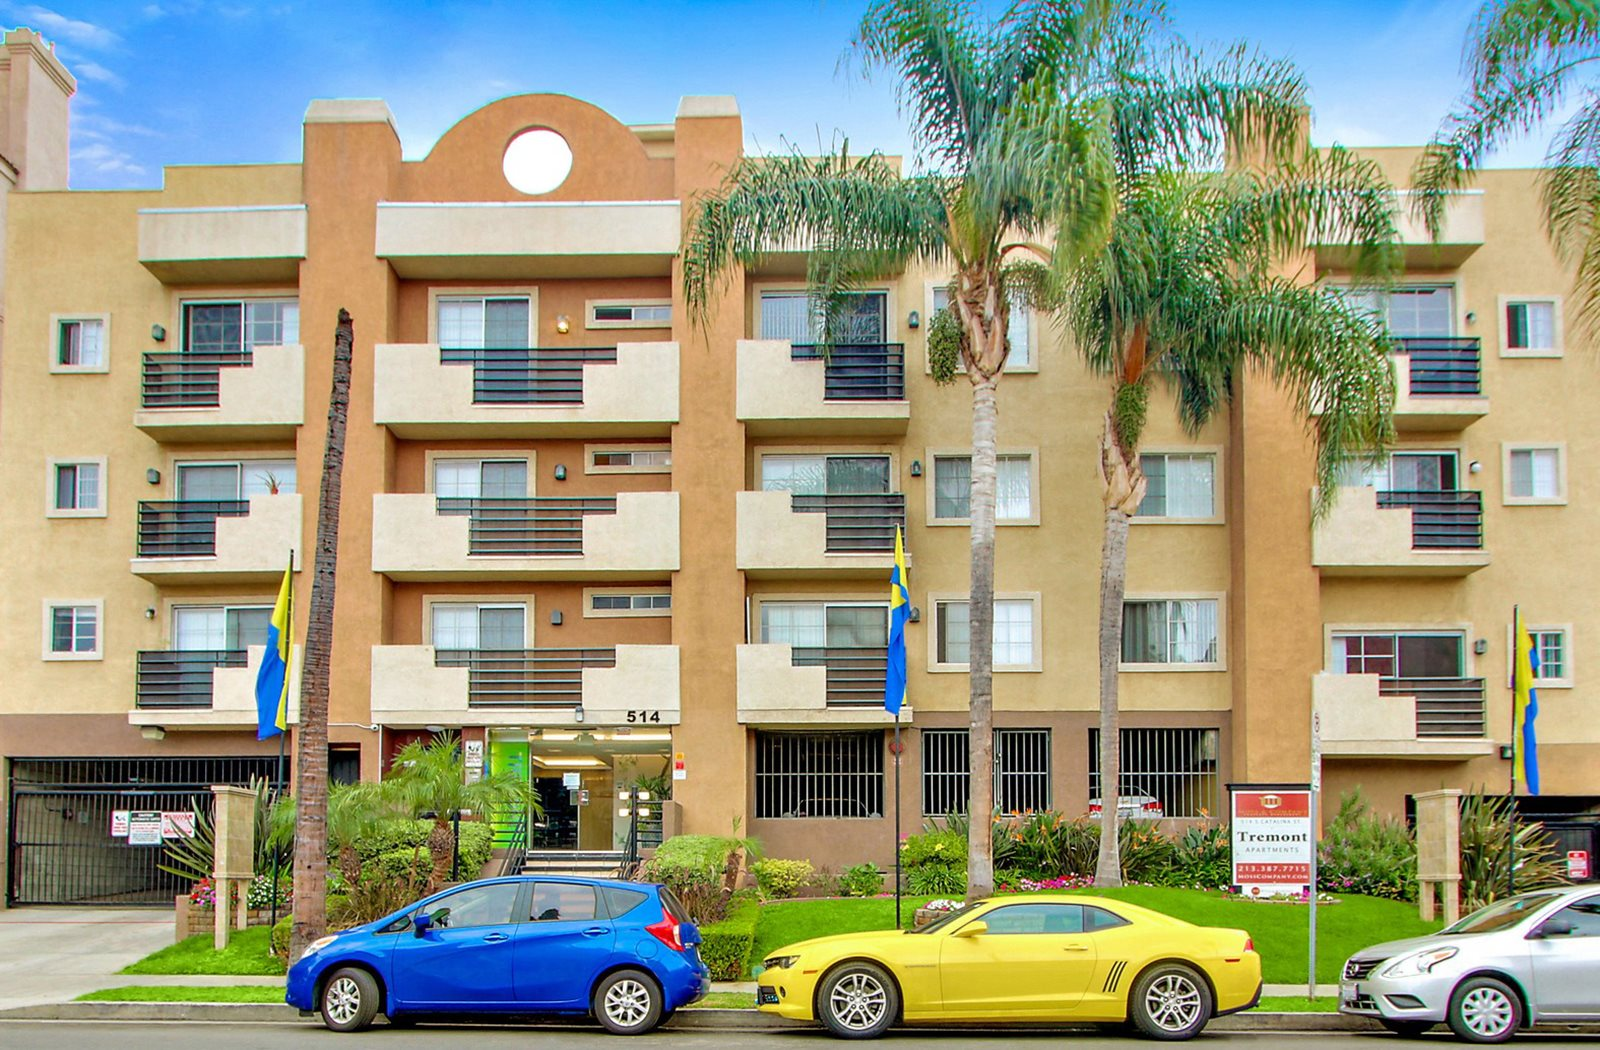 Apartments in Koreatown| Los Angeles CA | 514 S. Catalina Street ...